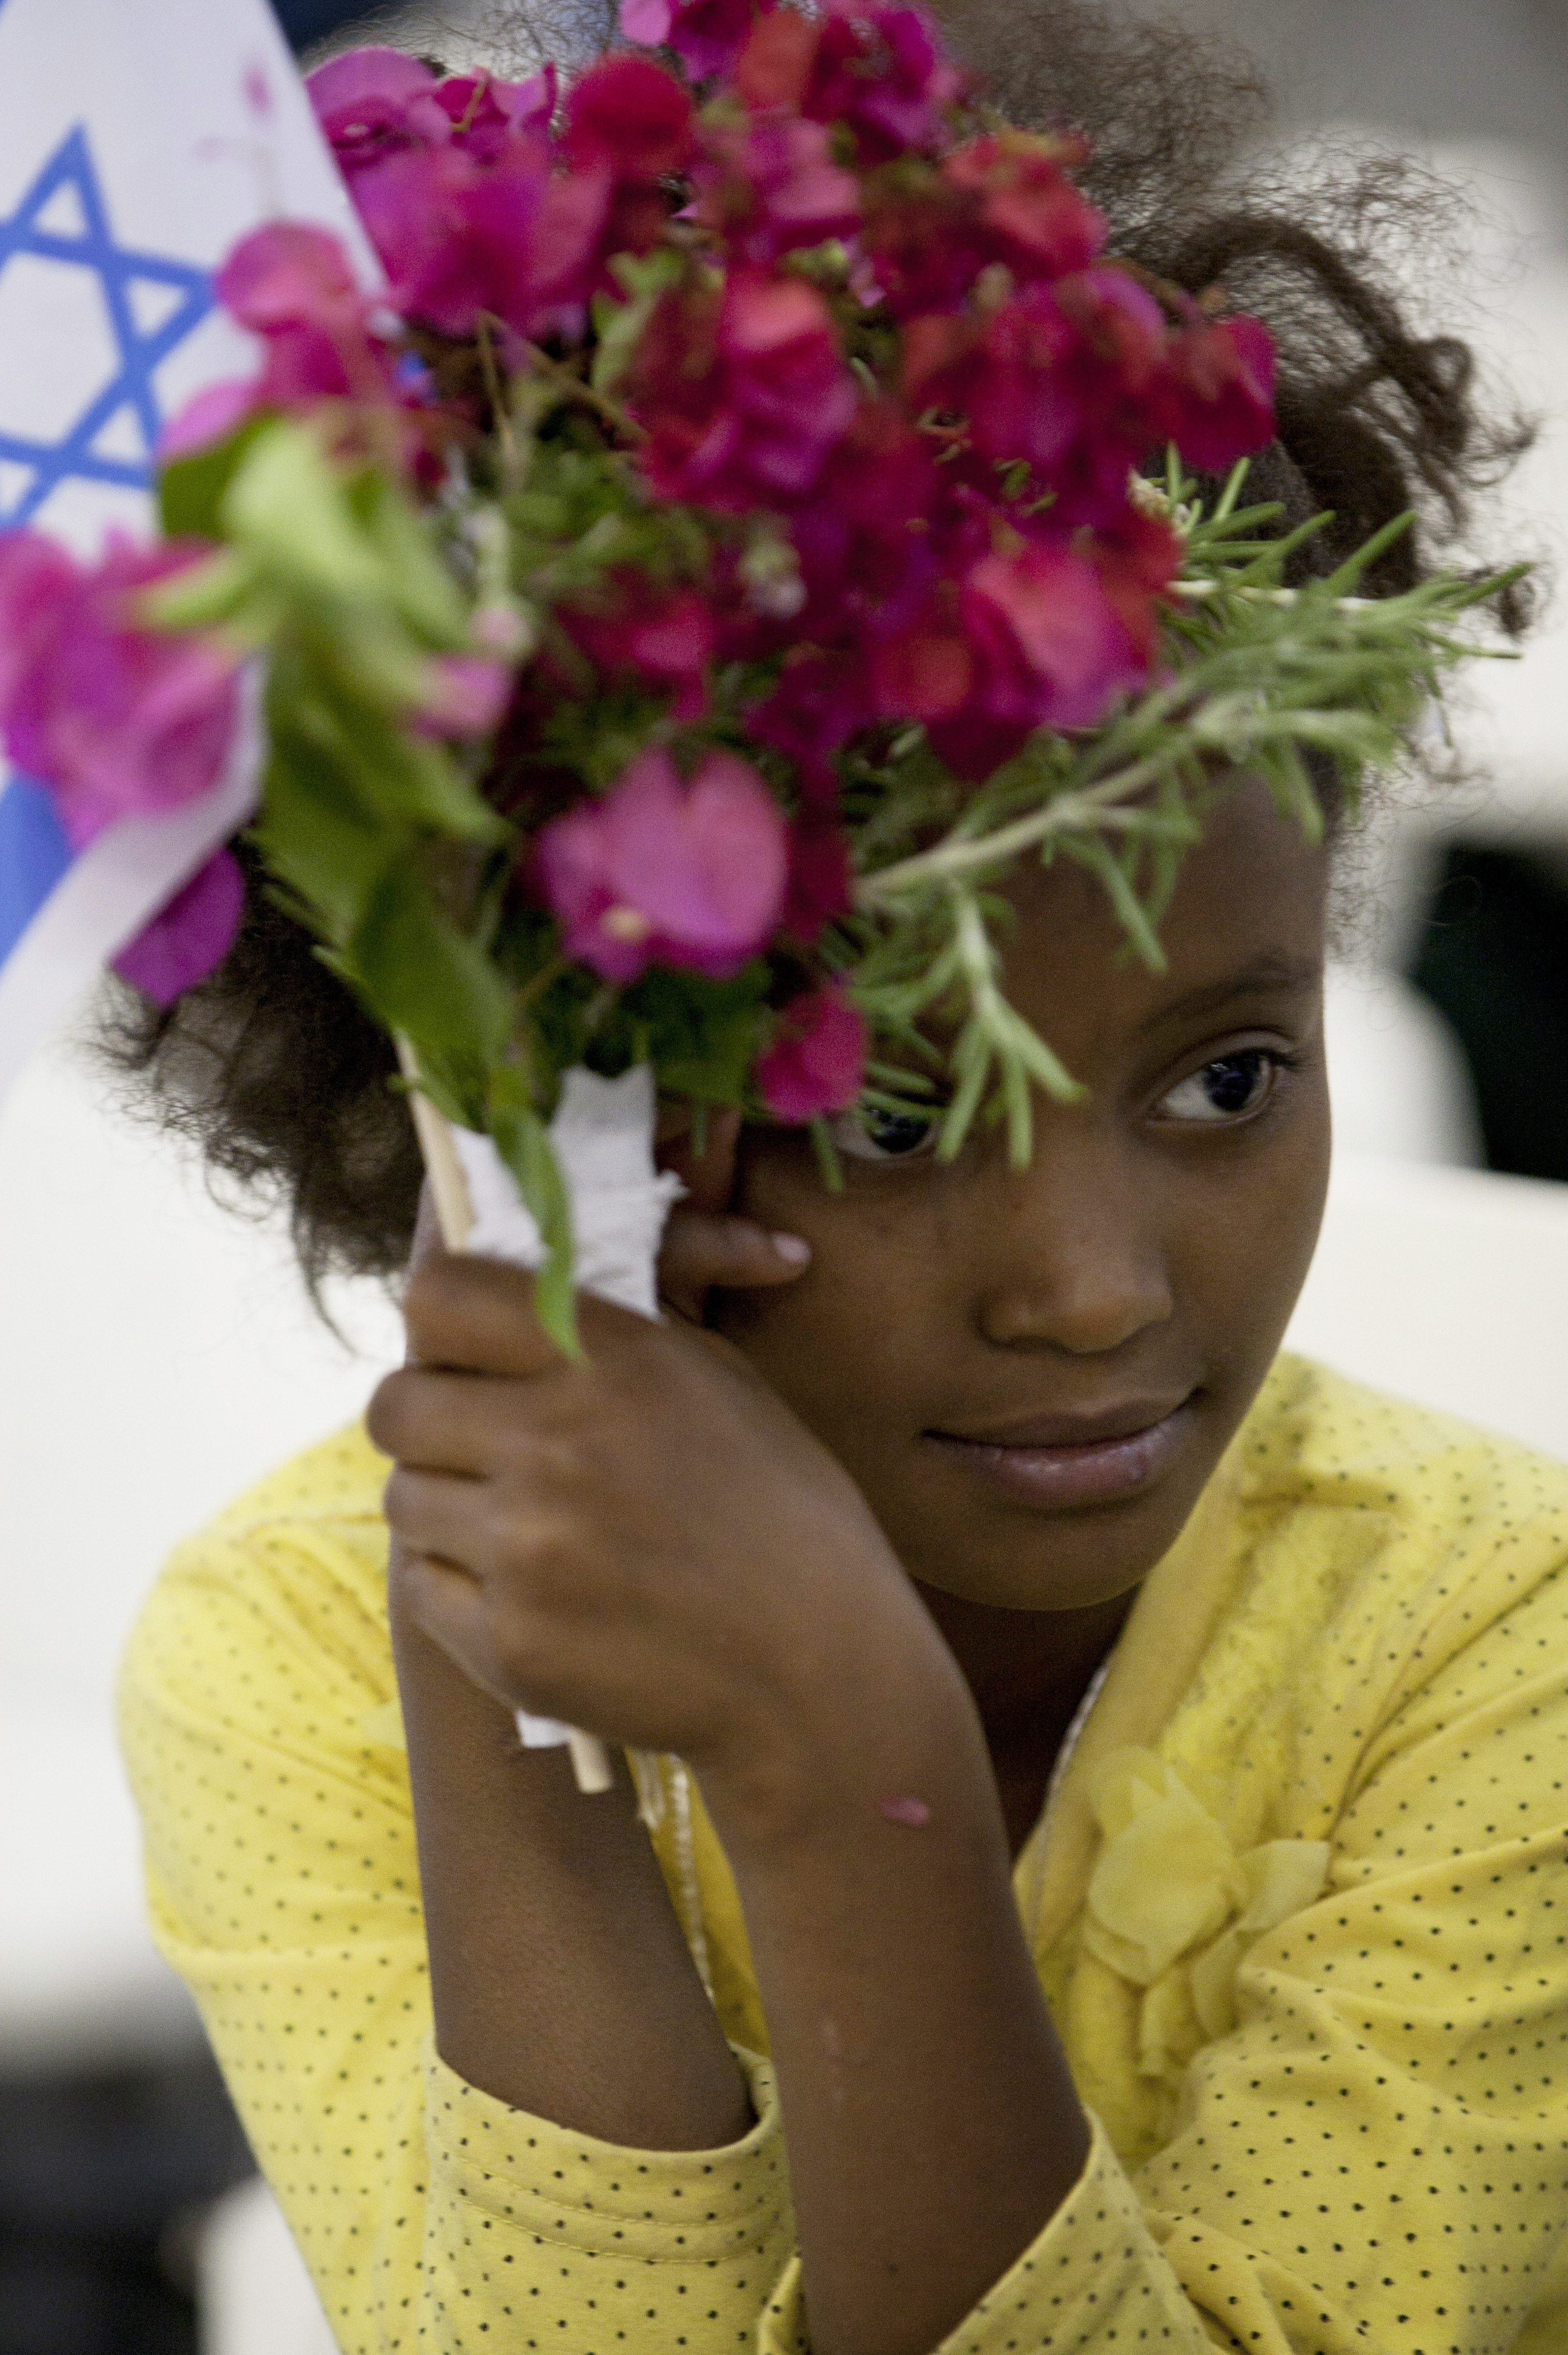 A newly immigrated Ethiopian Jewish girl holds flowers and a flag as she attends a welcoming ceremony at Ben Gurion airport near Tel Aviv, Israel, on Oct. 29, 2012. The Israeli government's program to bring Jews from Ethiopia officially ended this week.